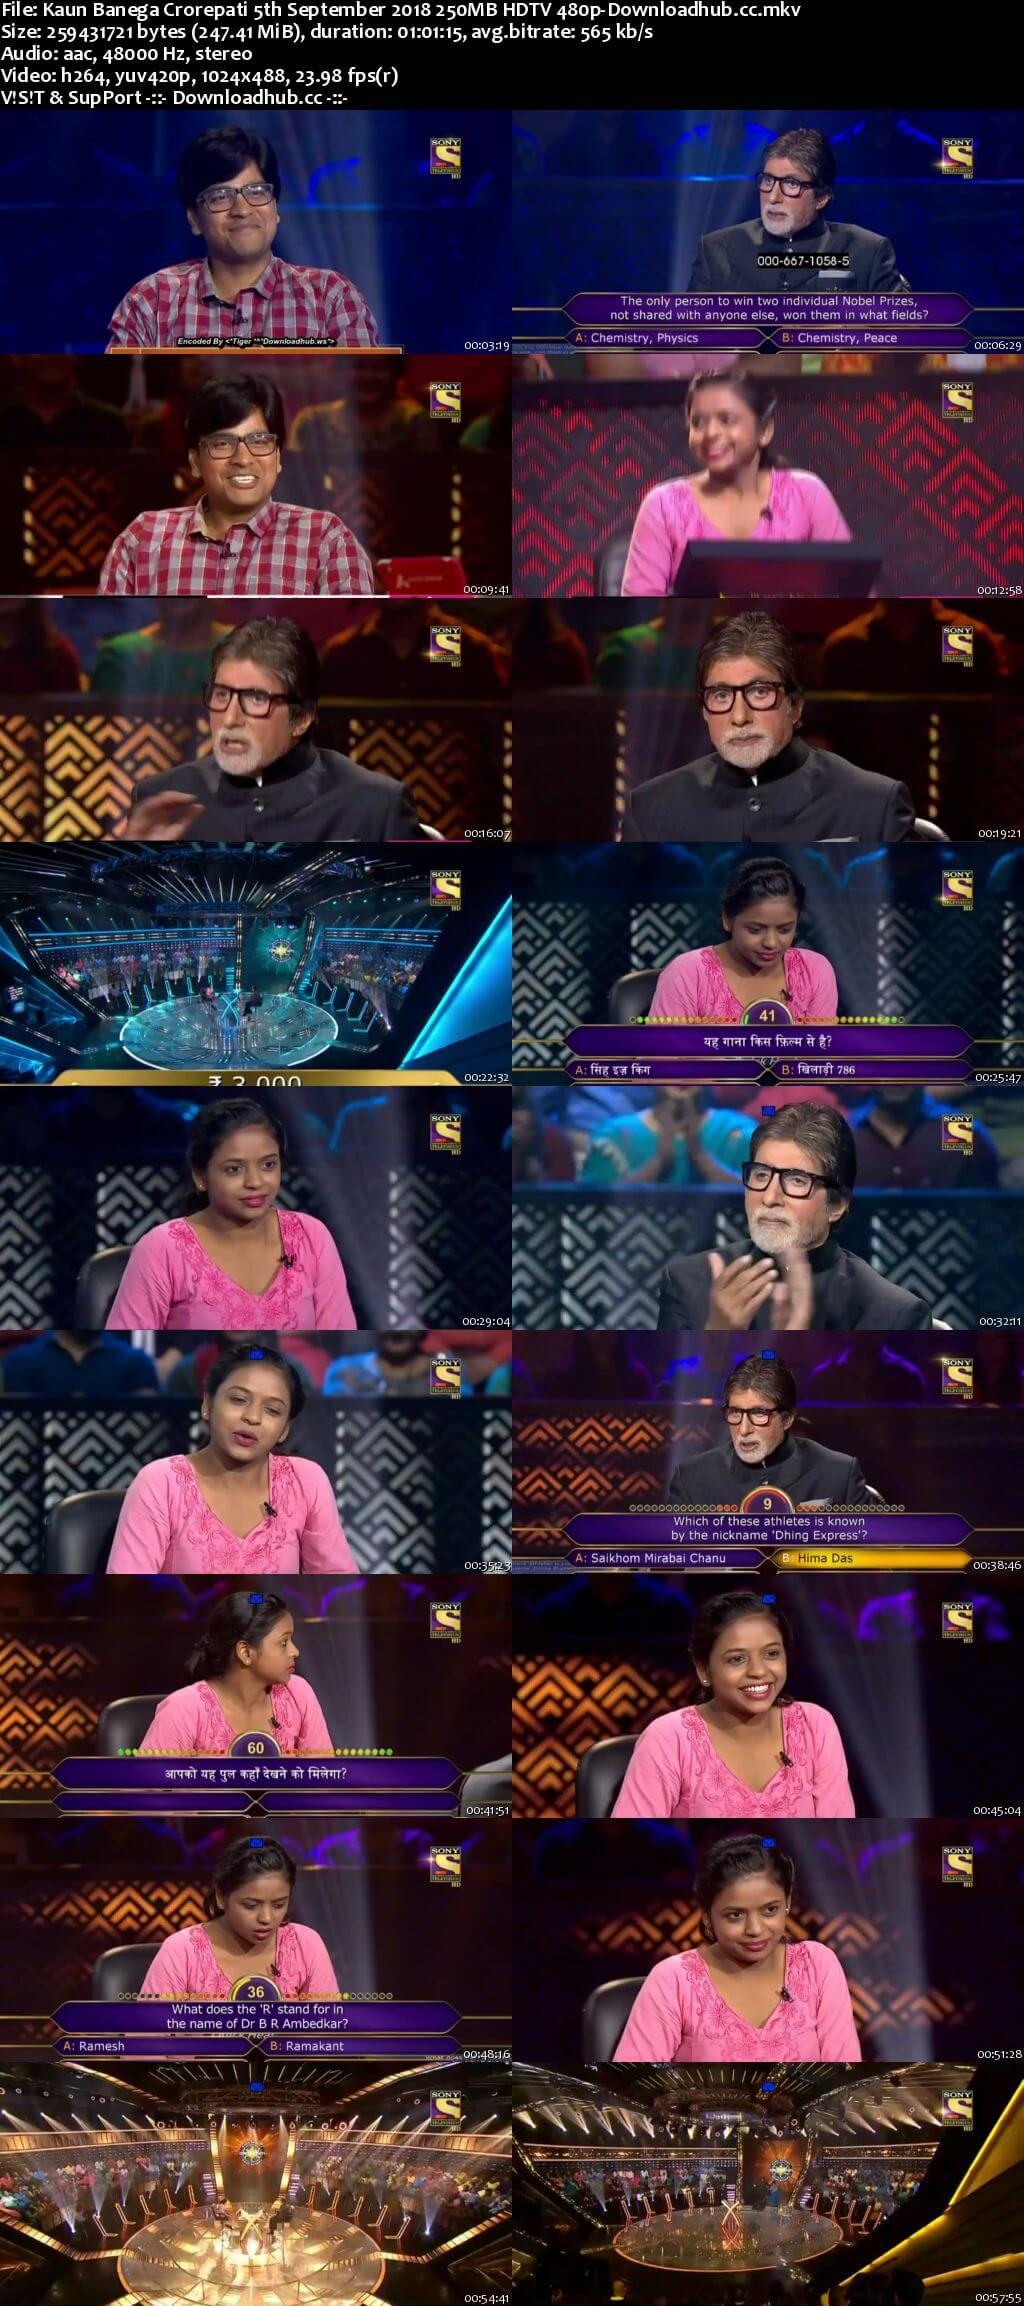 Kaun Banega Crorepati 5th September 2018 250MB HDTV 480p